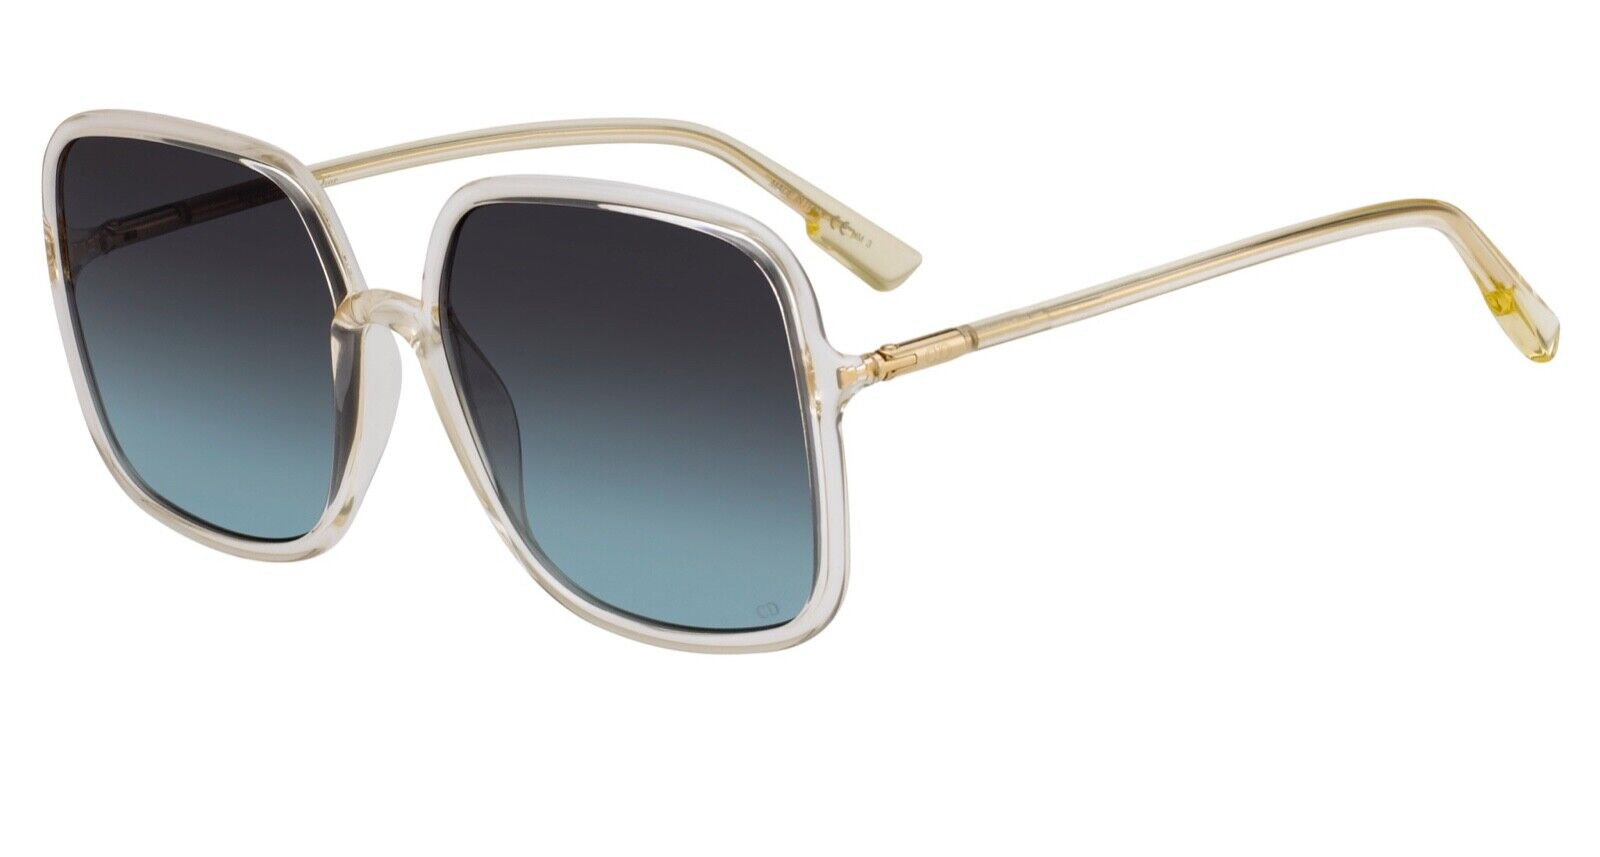 Brand New Dior Sunglasses SoStellaire1 40G -100% Authentic Express Shipping